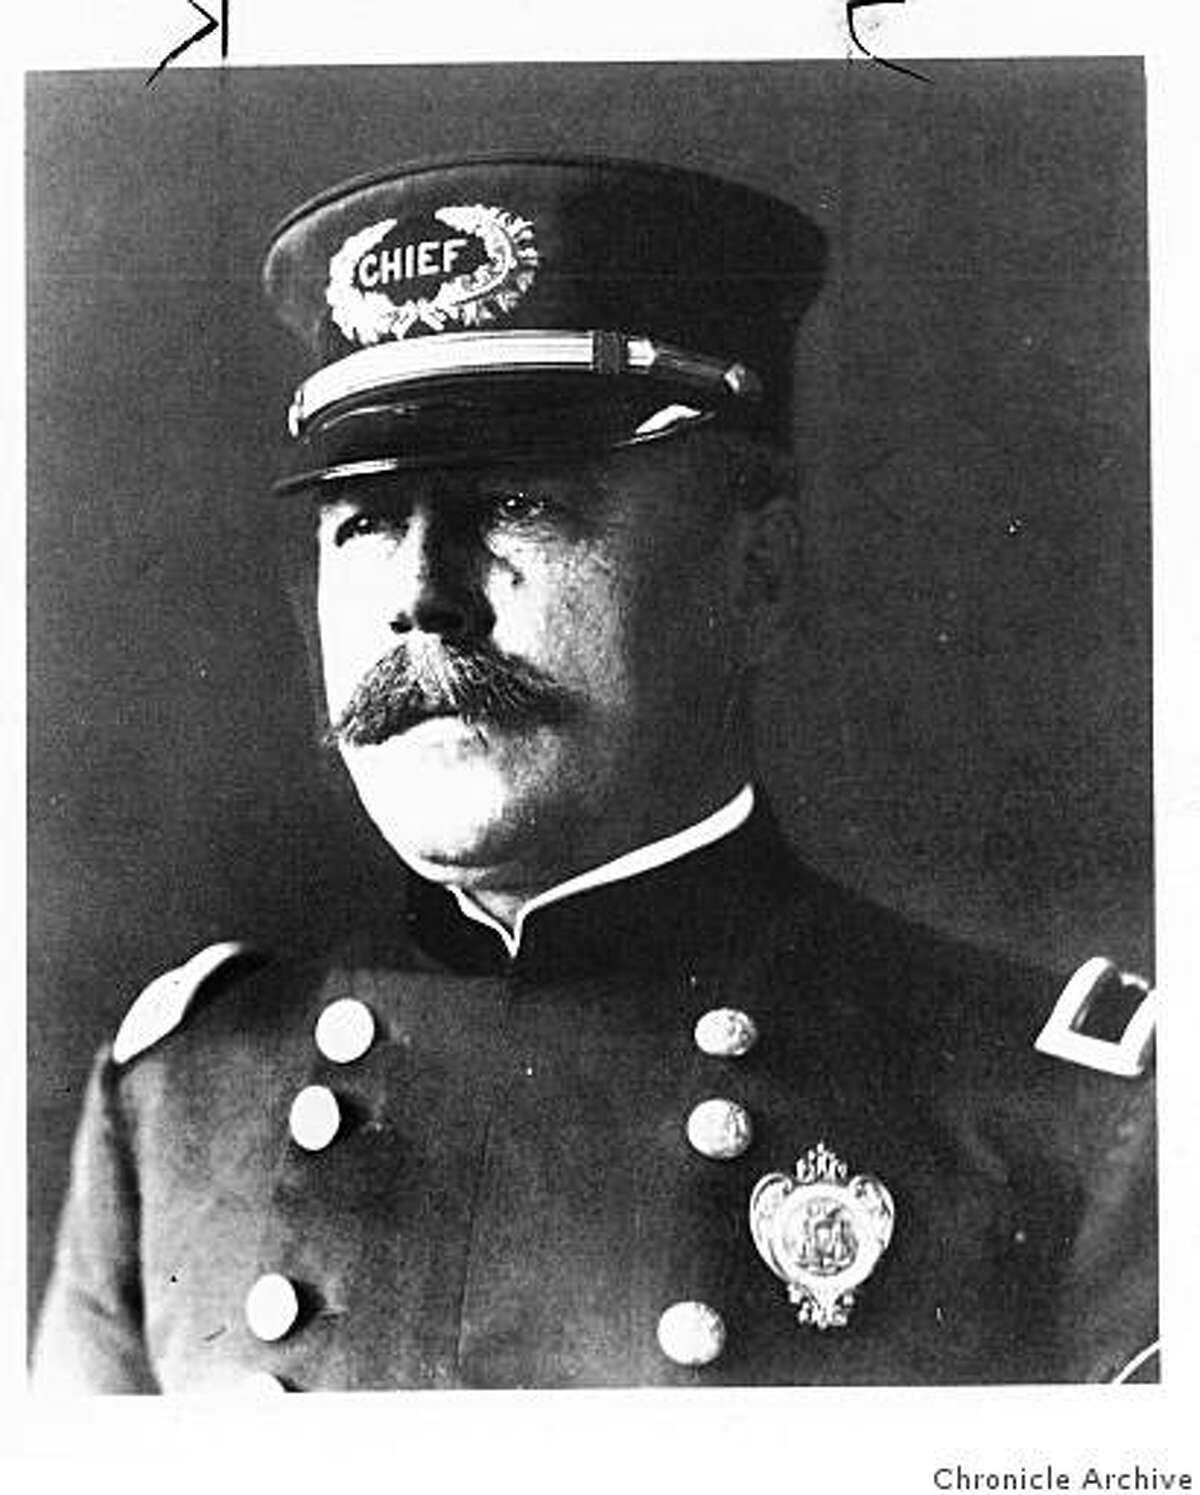 wayback08_PH_biggy.jpg William J. Biggy, SF Chief of Police, in 1908 ruled that if a cop ordered a speeding driver to halt and the driver did not, another cop 50 feet down the road could throw a nail-studded plank in front of the speeding car.Info taken from Chronicle archive story.